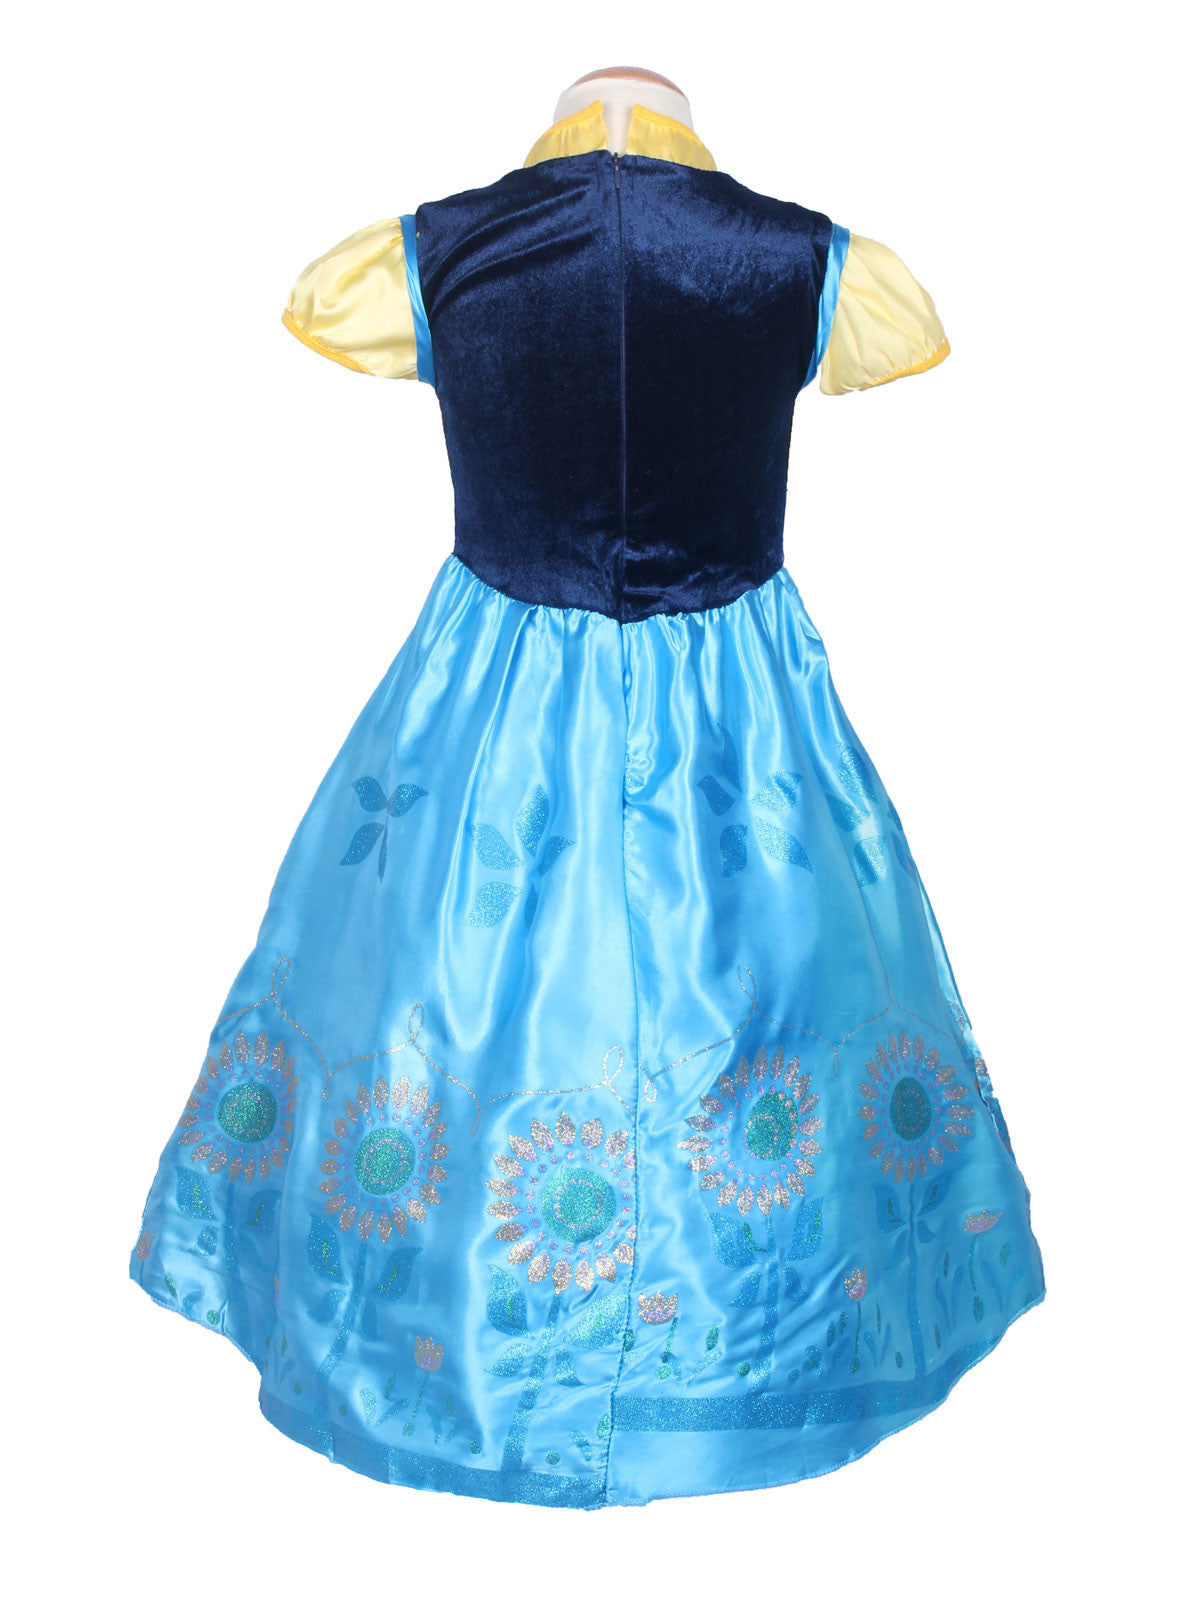 JerrisApparel New Princess Dress Girls Birthday Party Costume